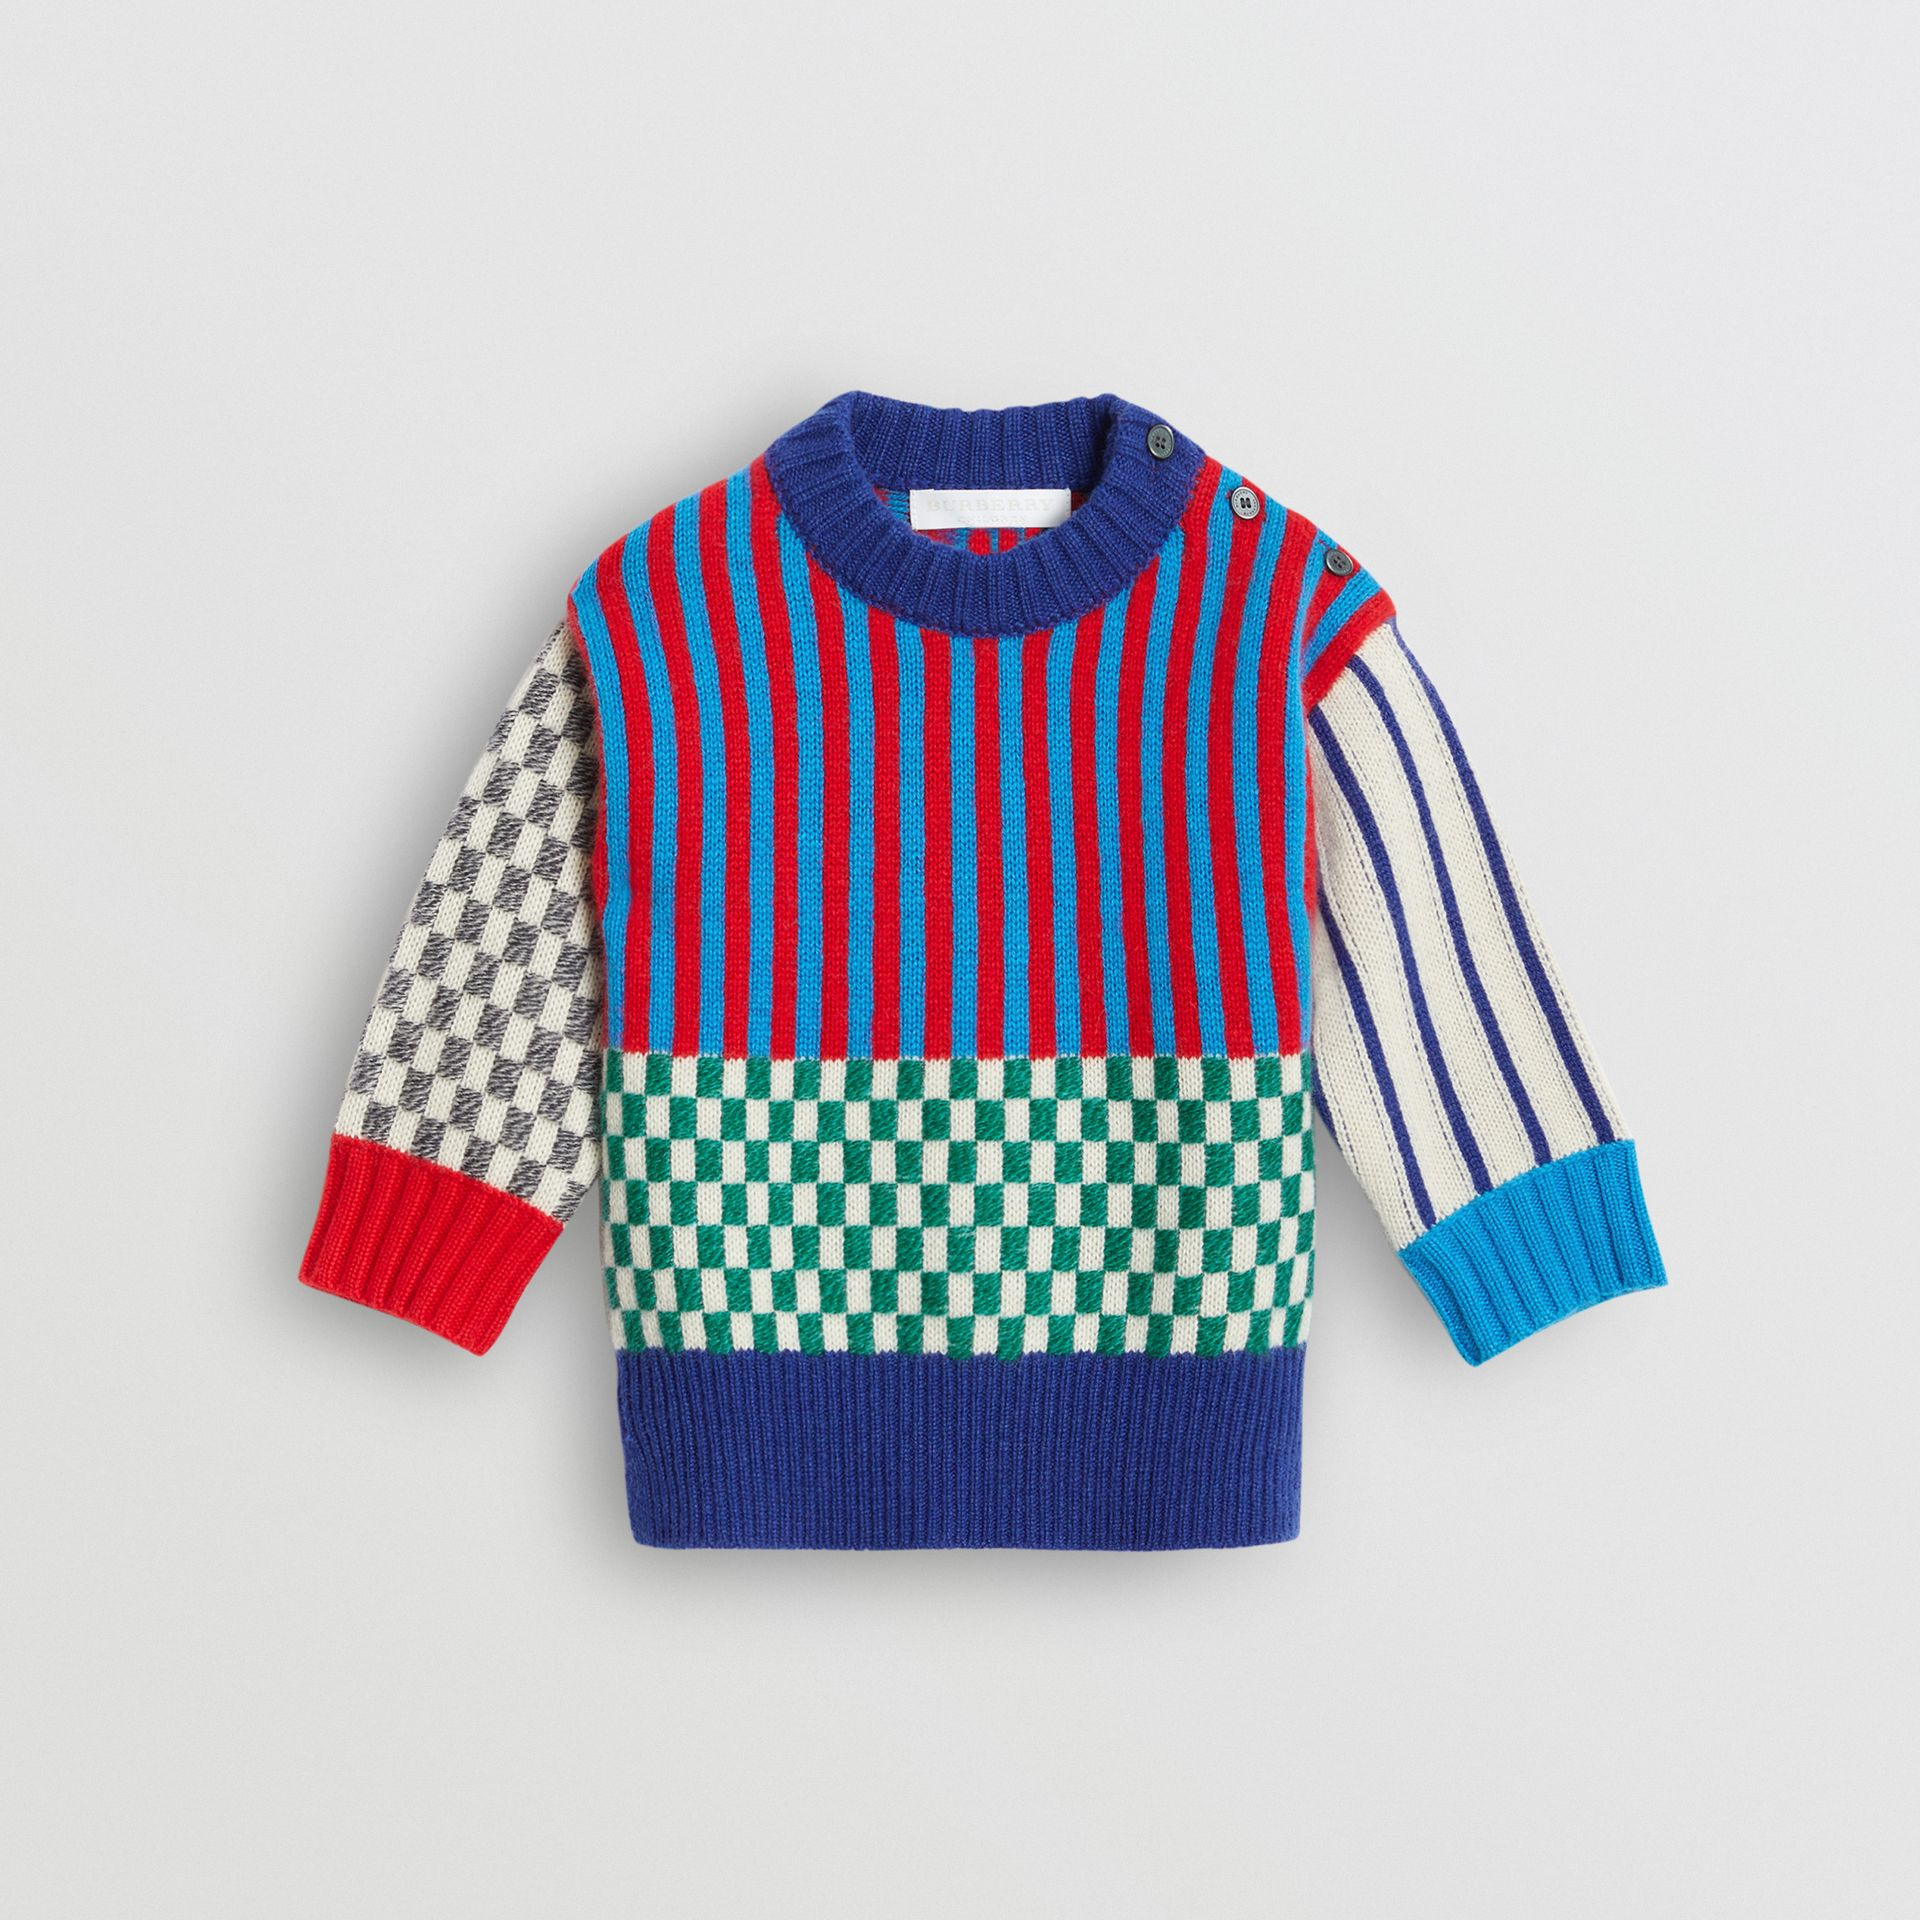 Graphic Cashmere Jacquard Sweater in Multicolour - Children | Burberry - gallery image 0